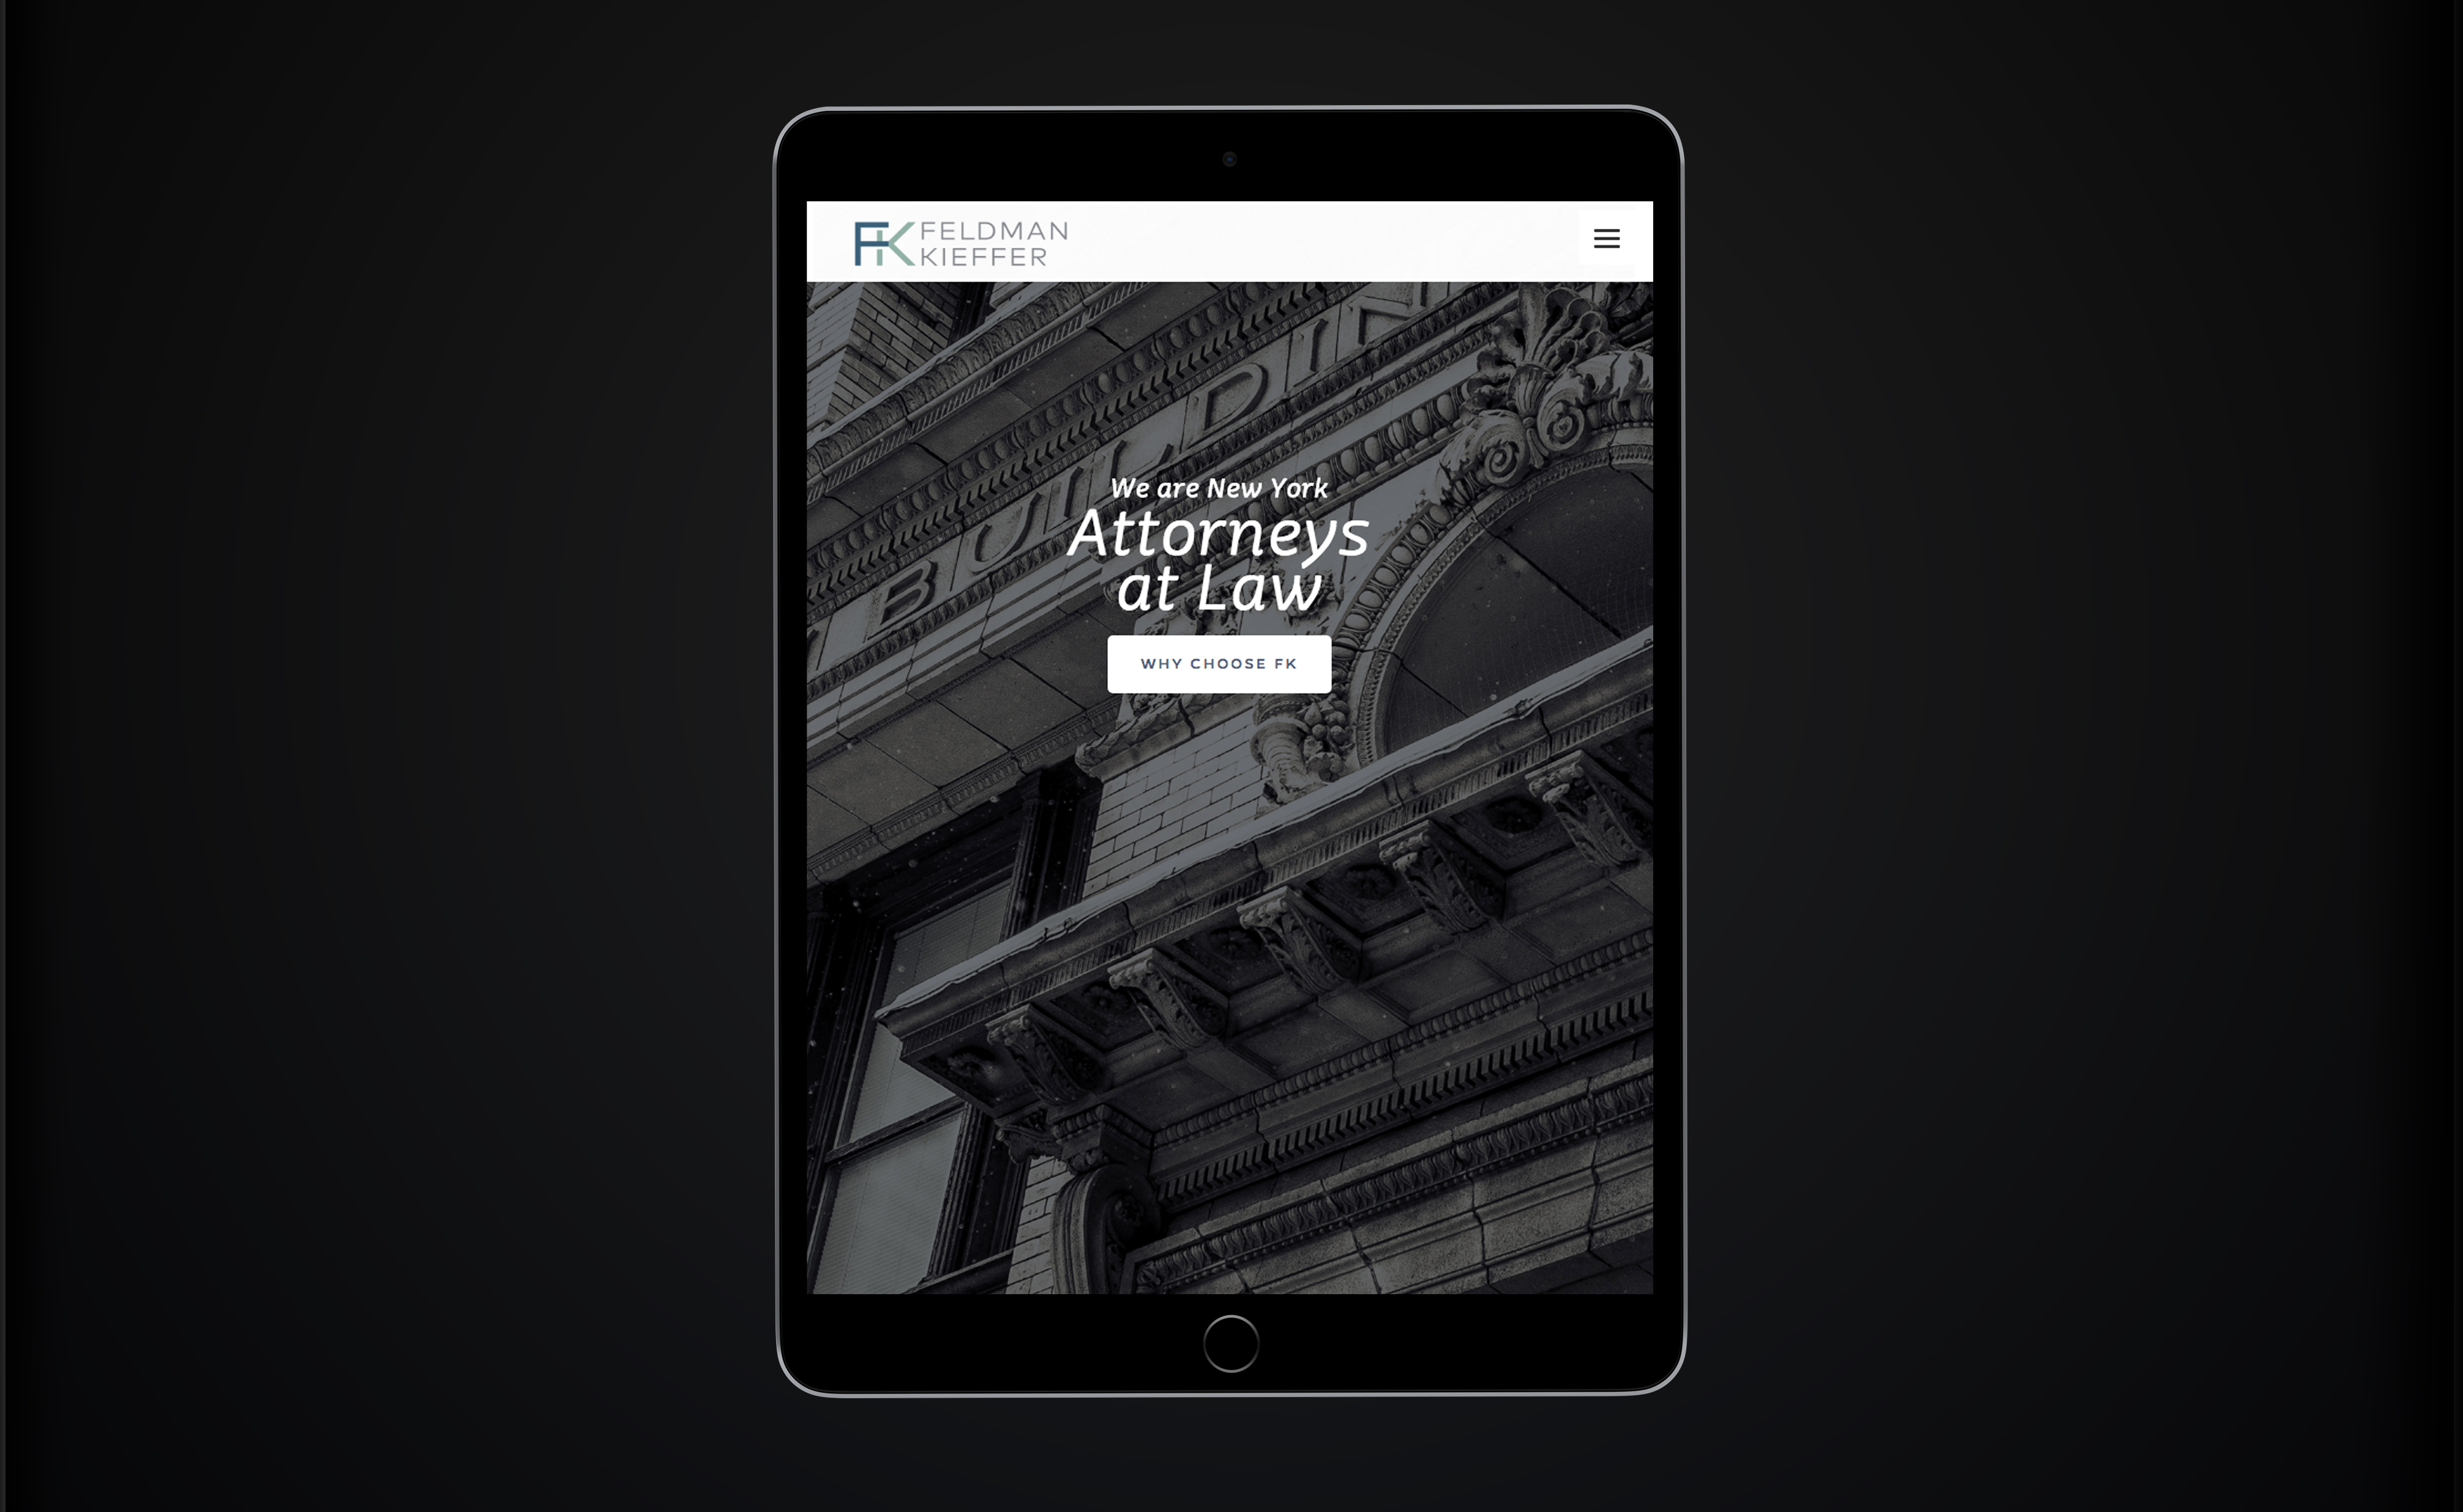 Feldman Kieffer Law Firm CMS Web Design